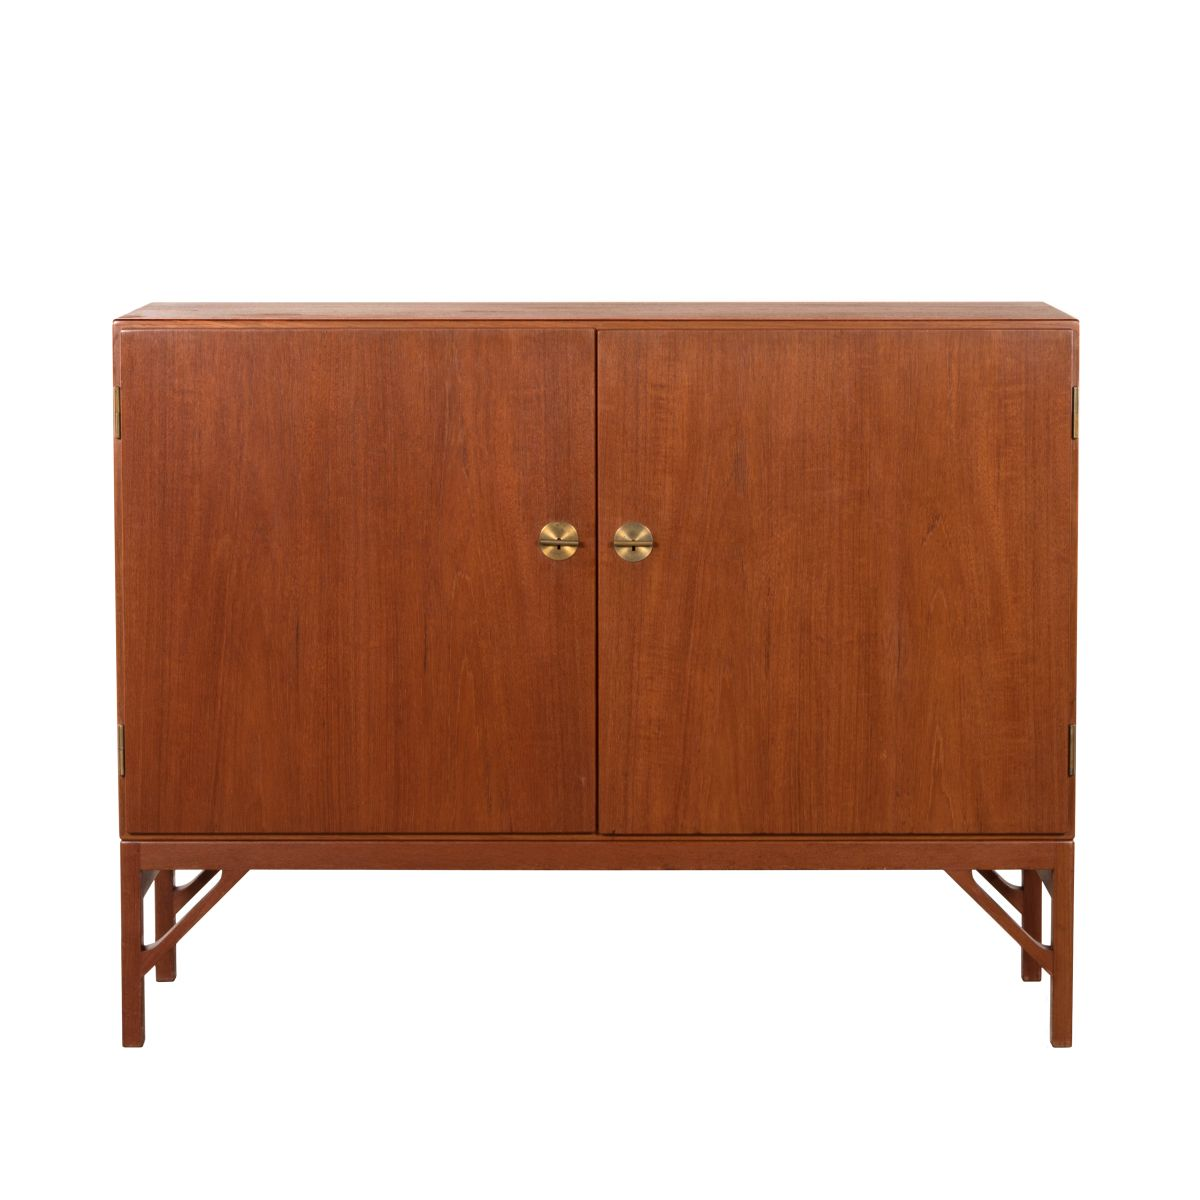 vintage teak m232 schrank von b rge mogensen f r fdb bei pamono kaufen. Black Bedroom Furniture Sets. Home Design Ideas